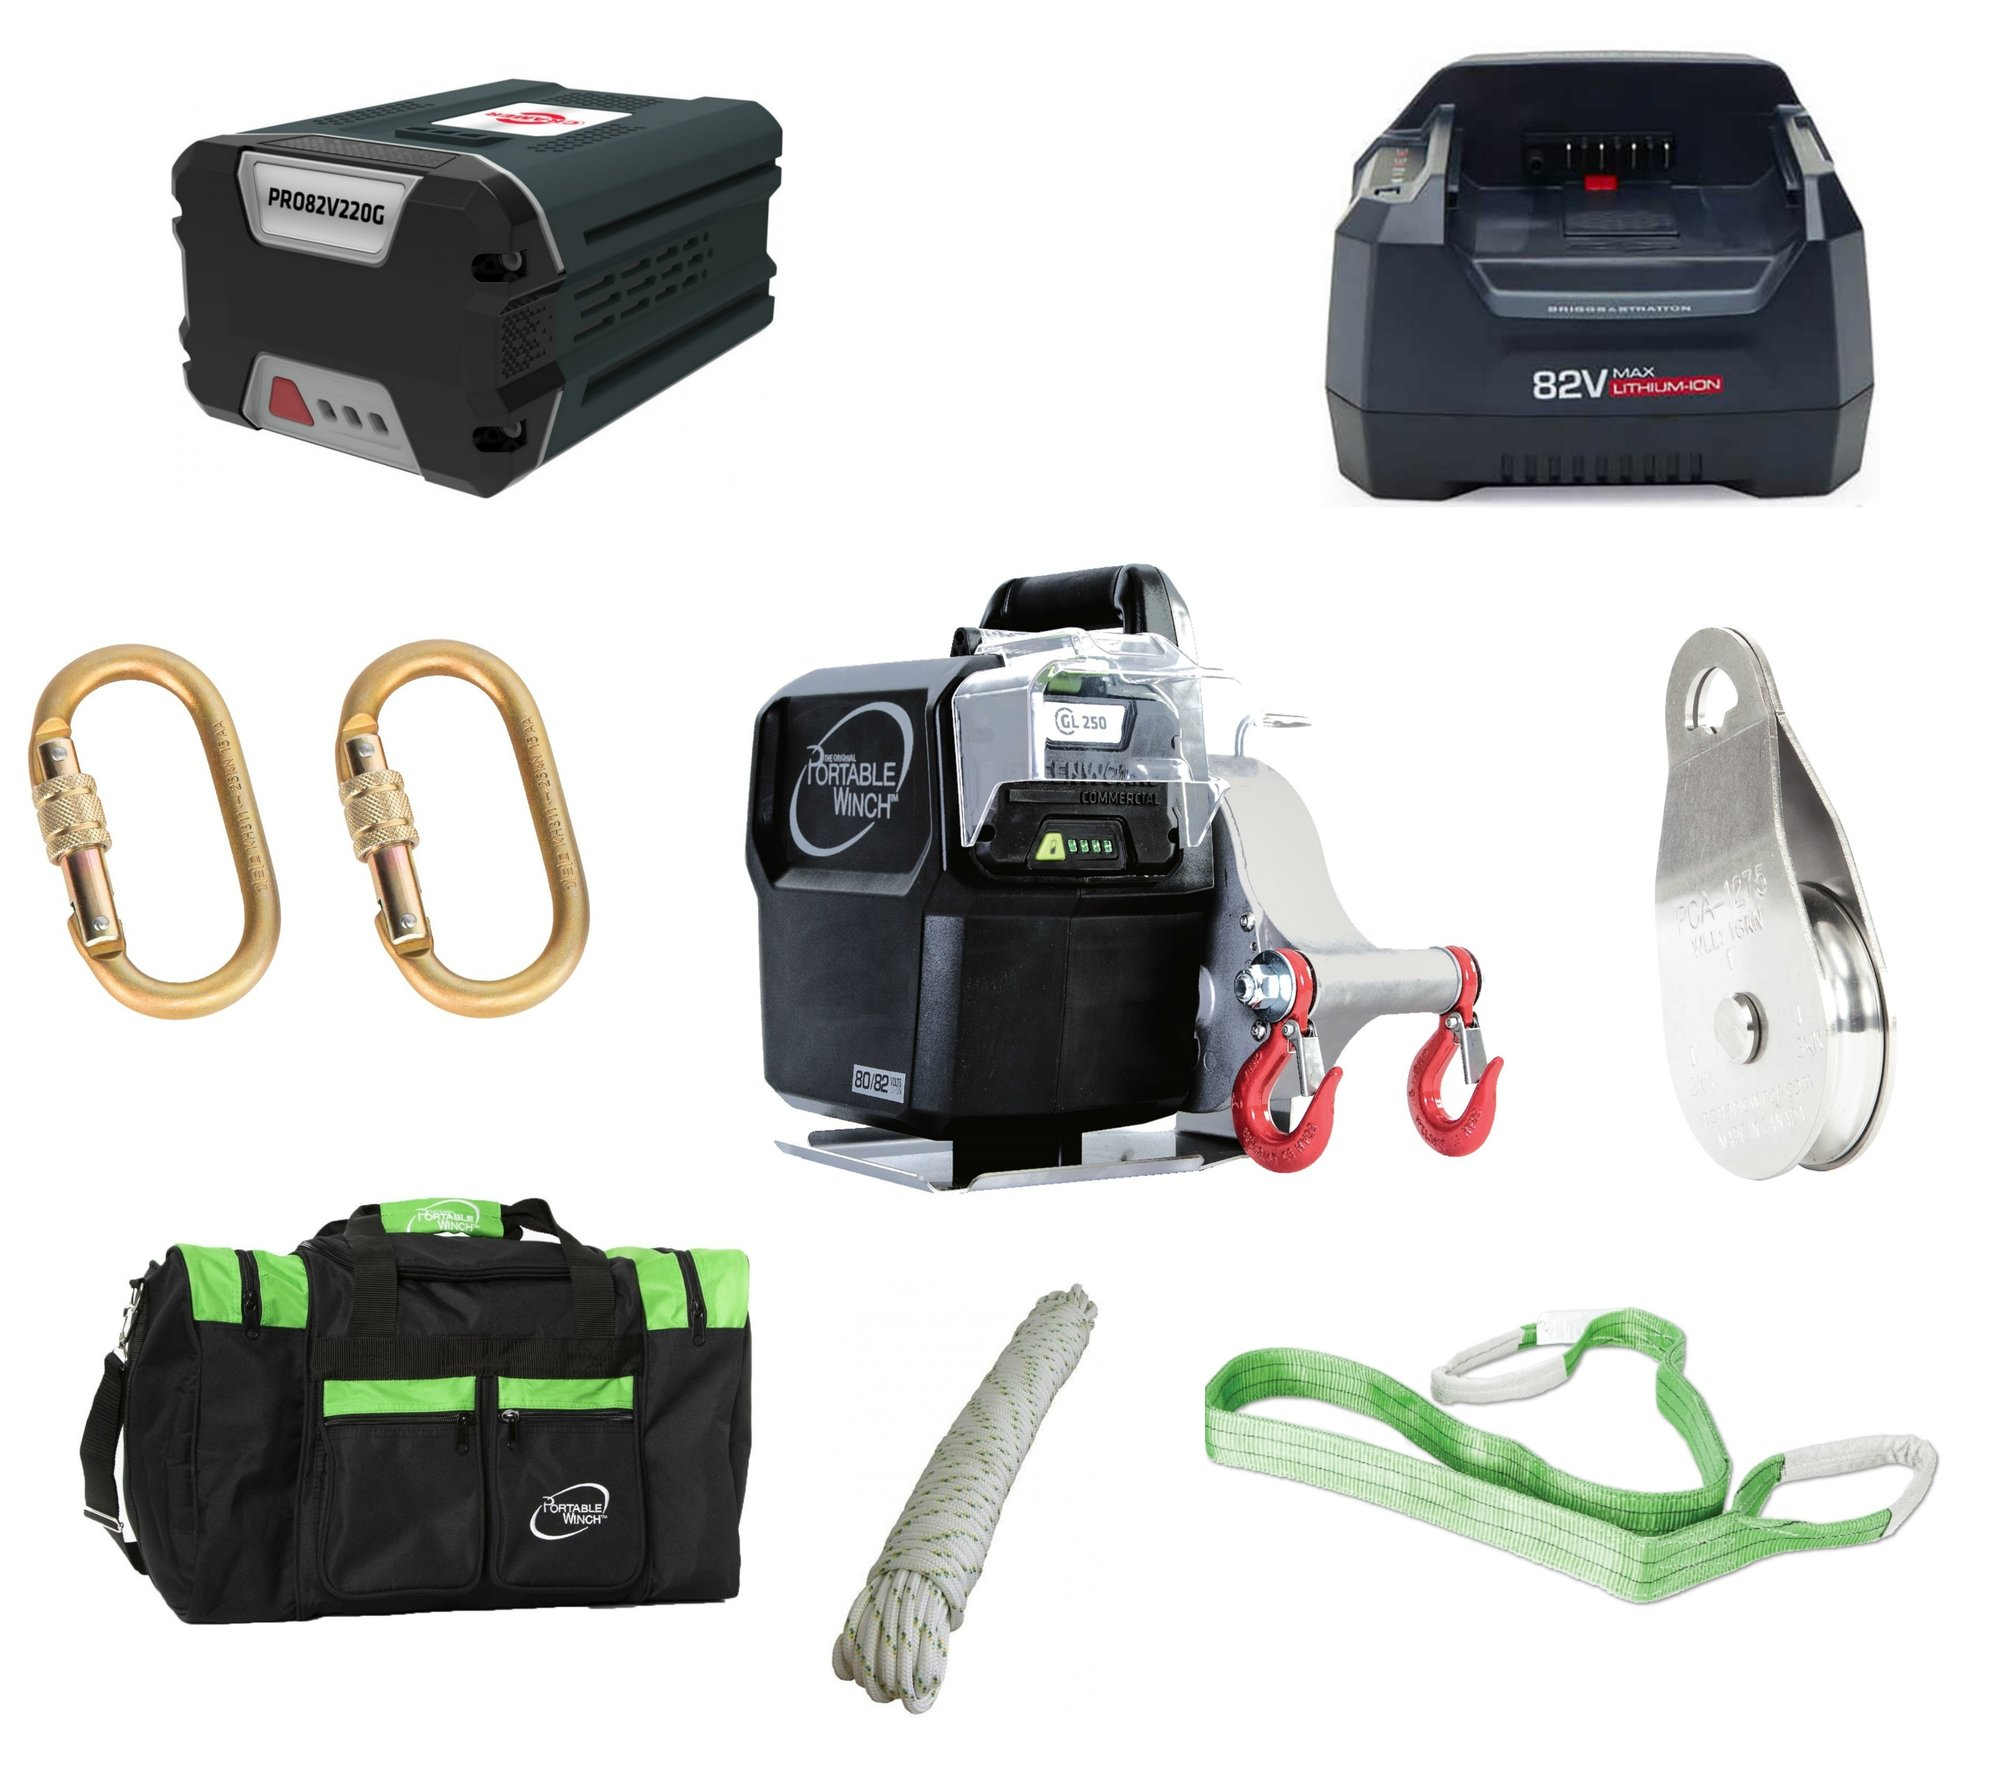 Aku Basic set Portable Winch PCW3000-Li Akku Lader